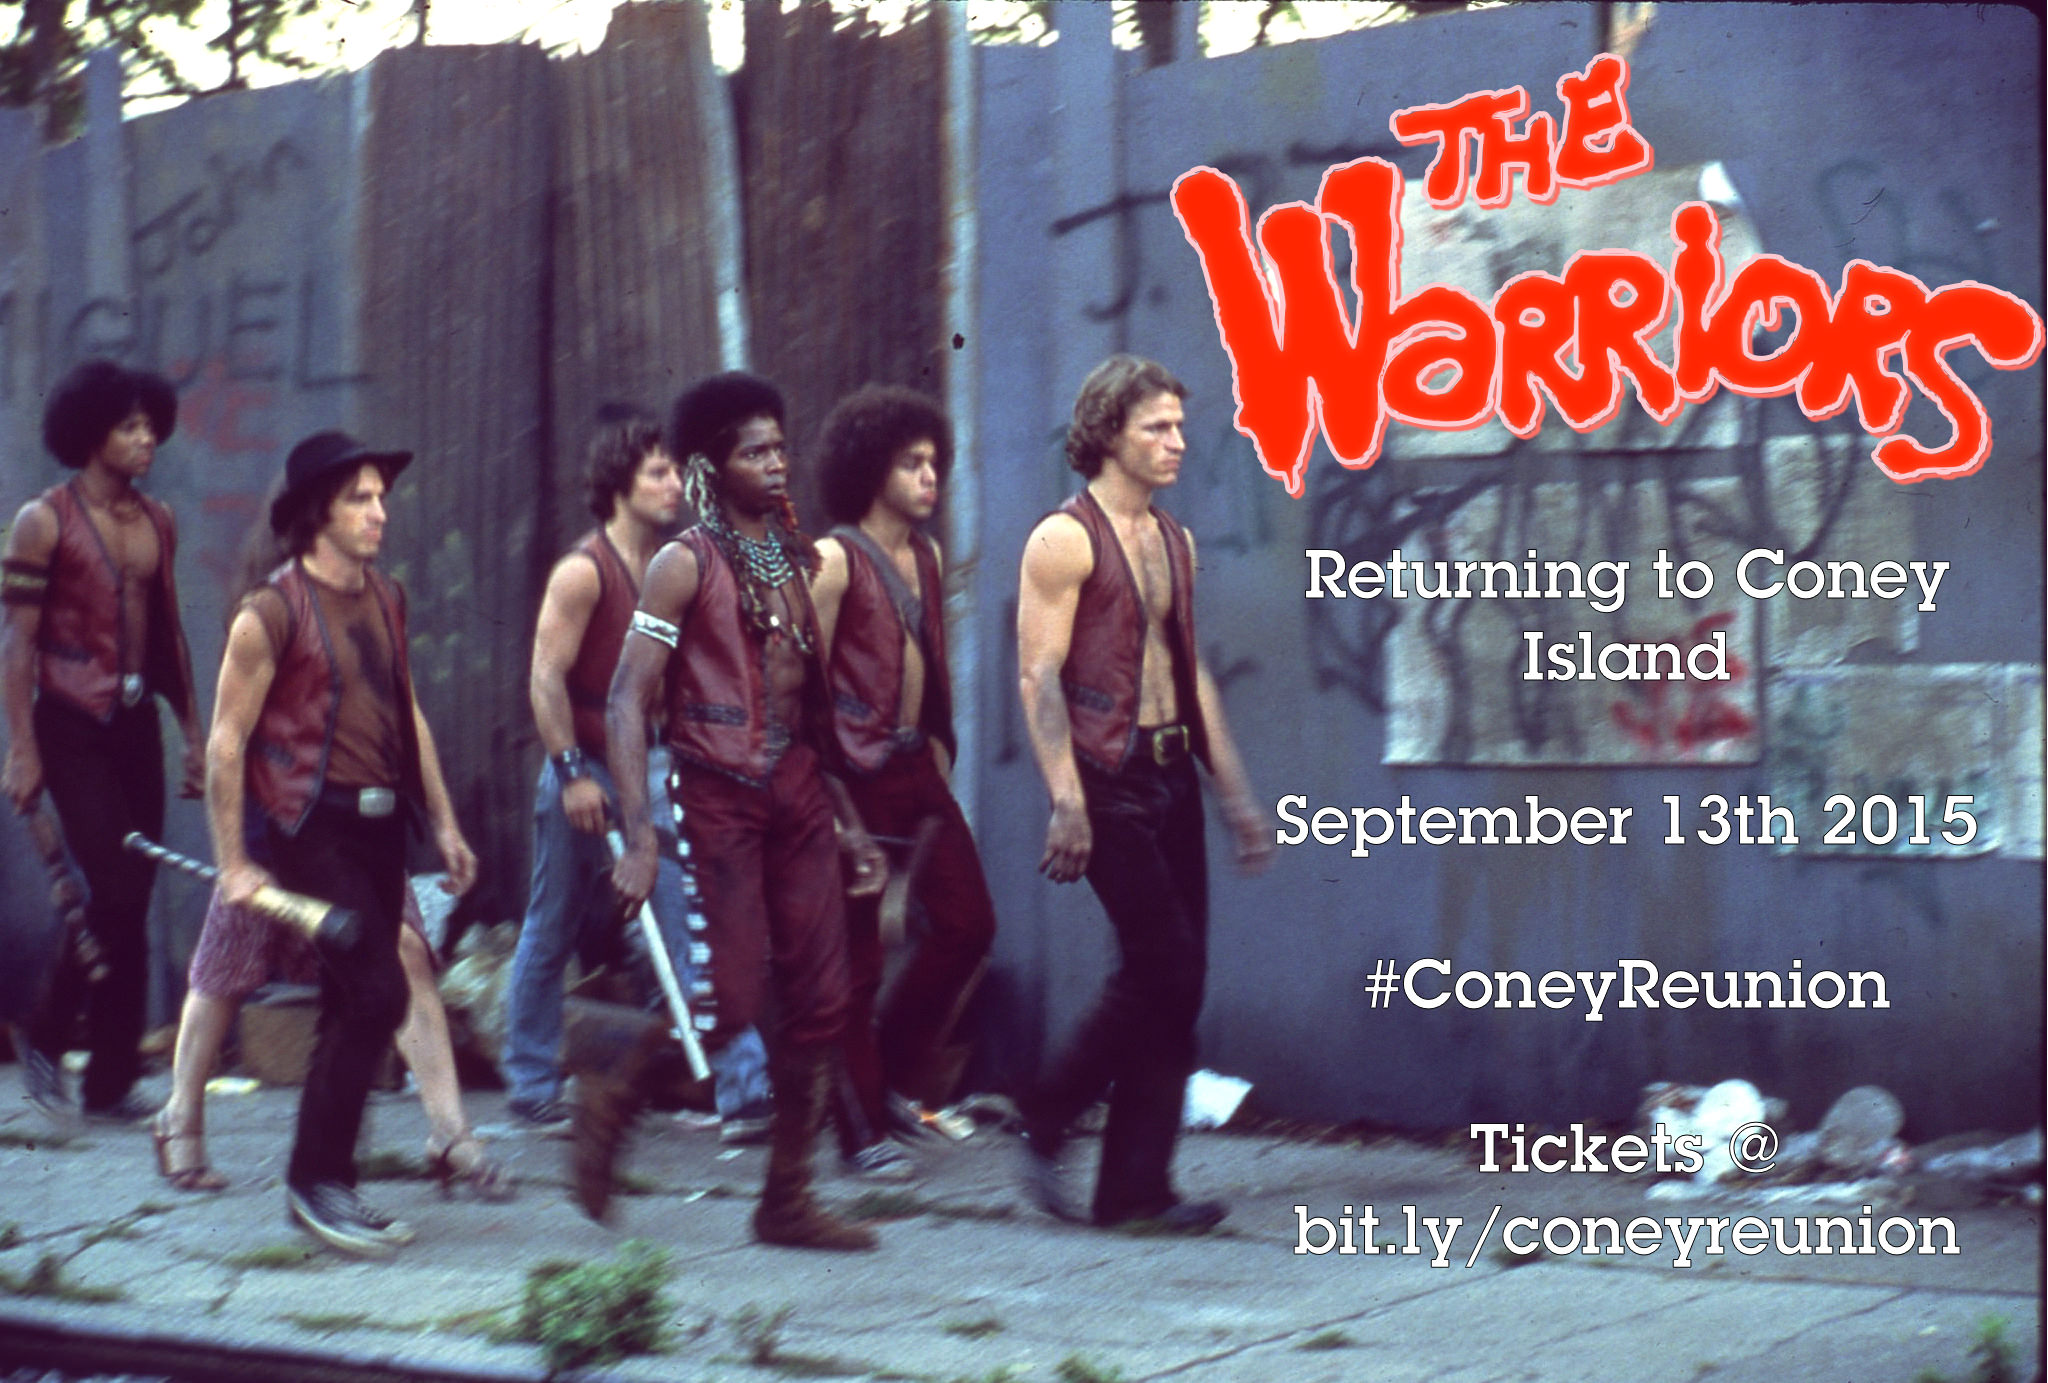 The Warriors Movie Site - Reunion